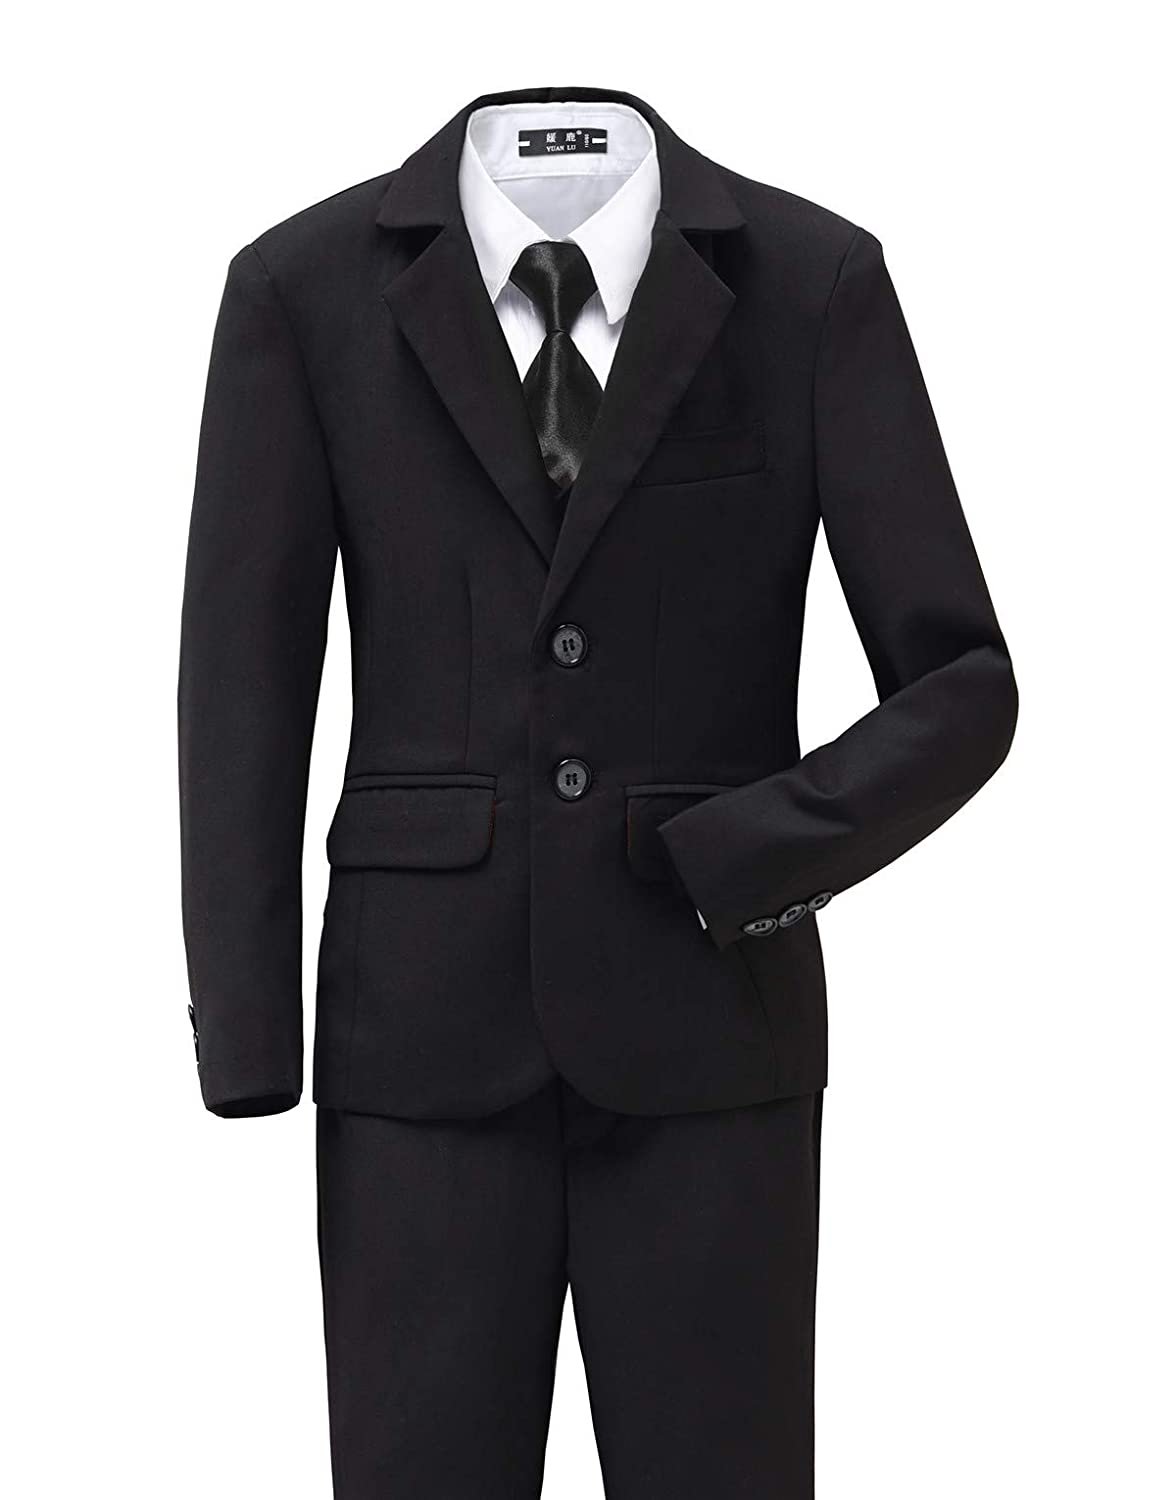 Yuanlu 5 Piece Boys' First Suits Tuxedo Blue Black, No Tail